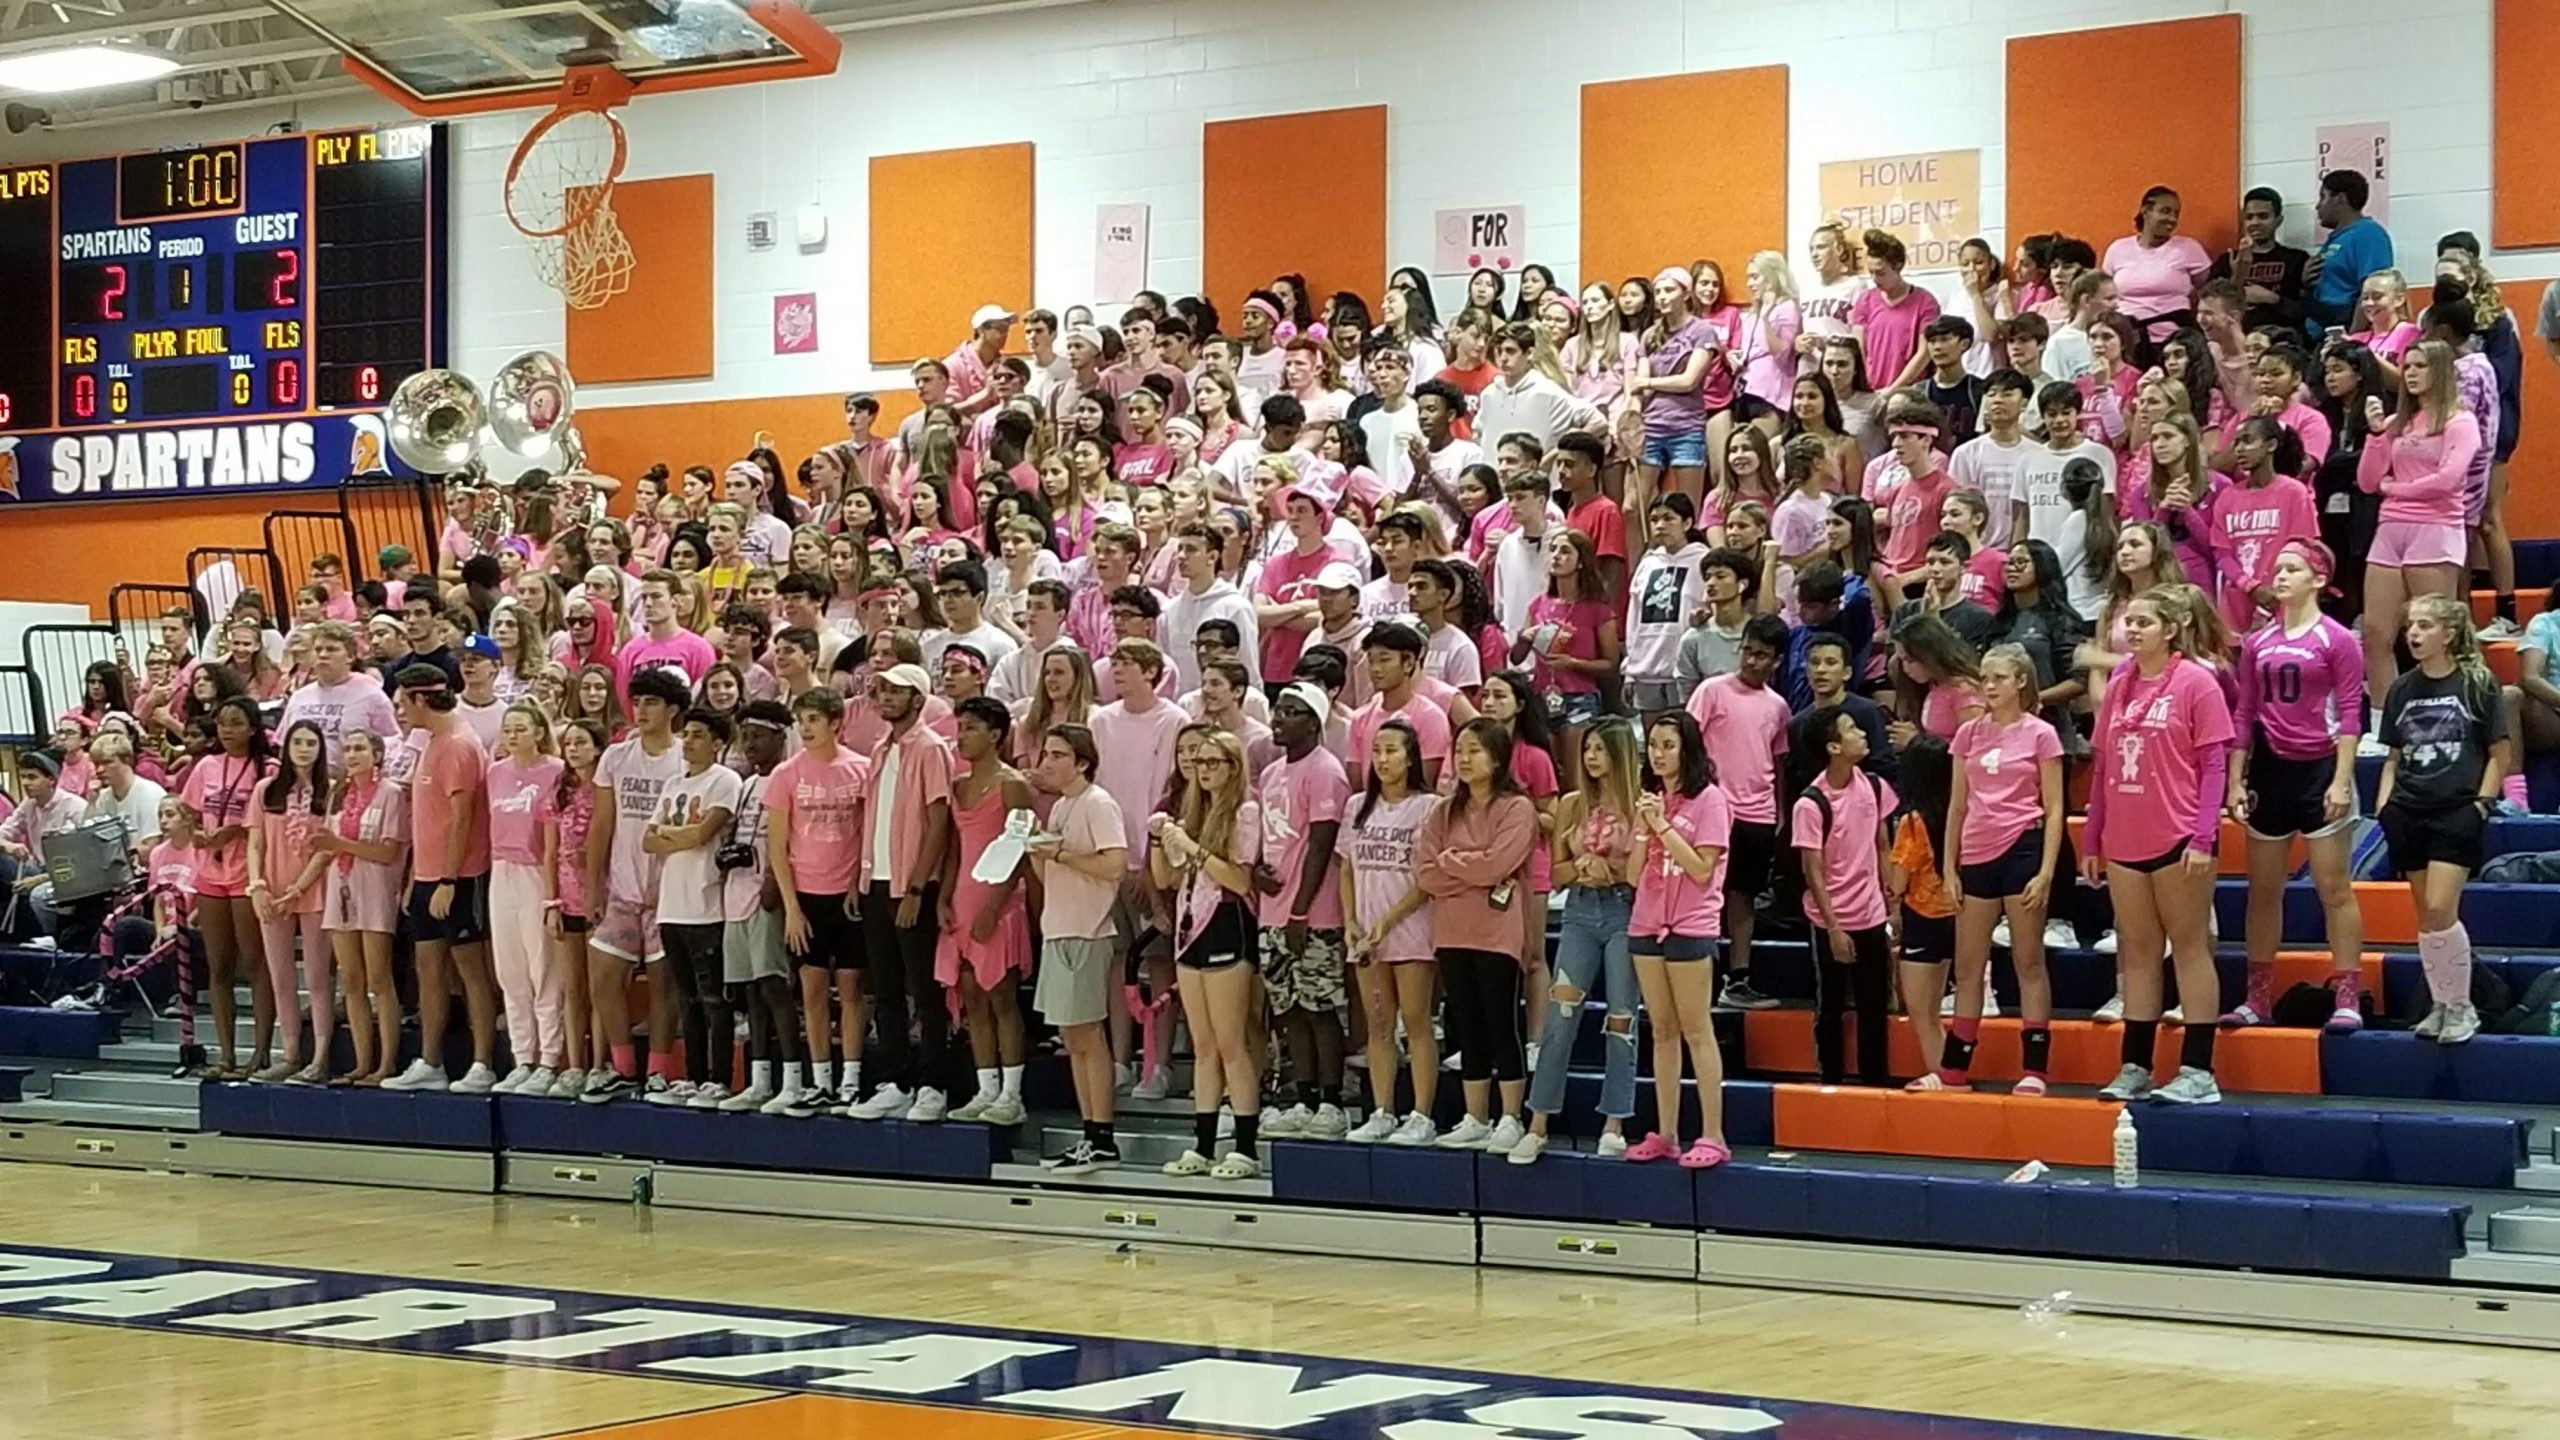 Fan section at West Springfield High School